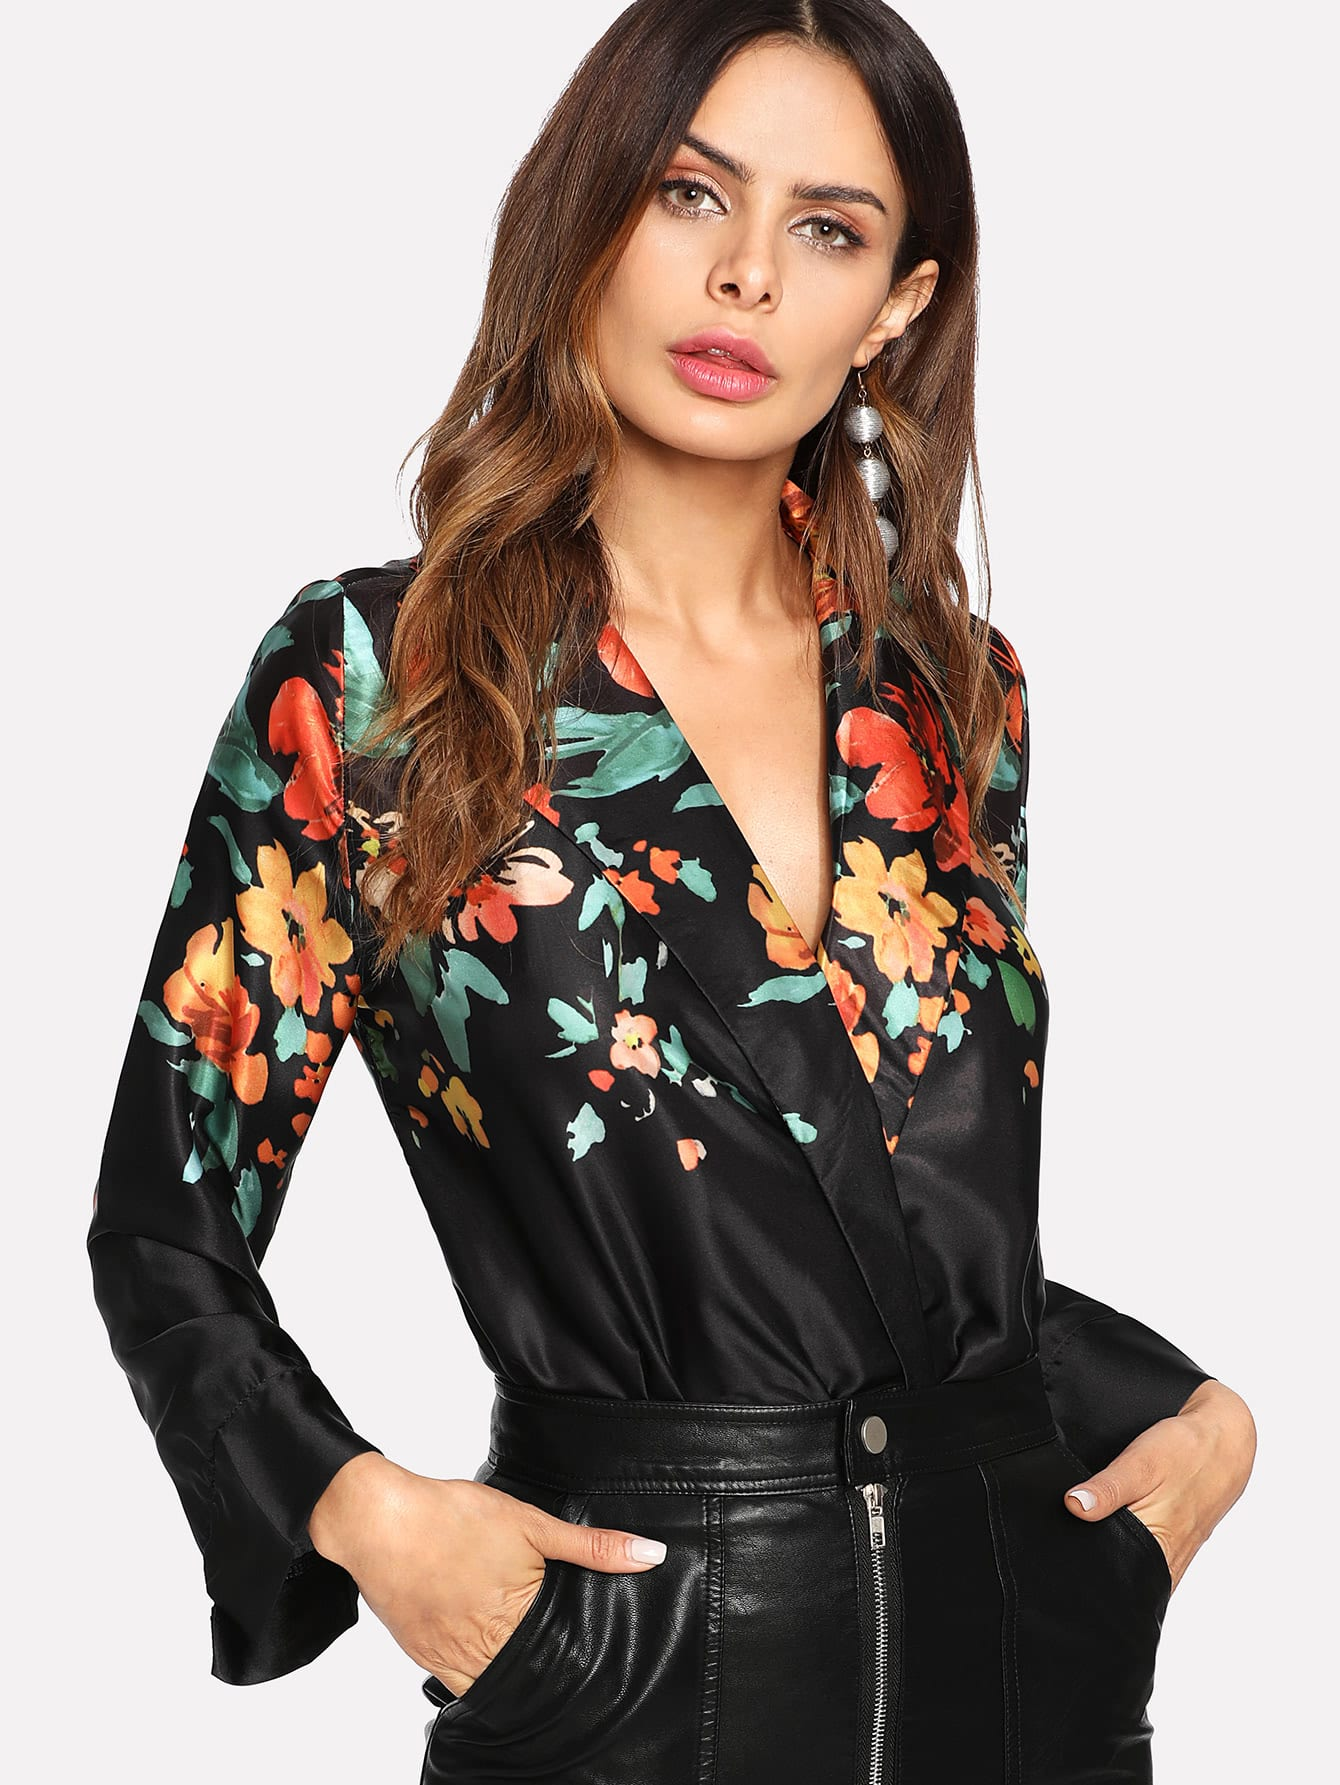 Floral Wrap Blouse Bodysuit striped wrap blouse